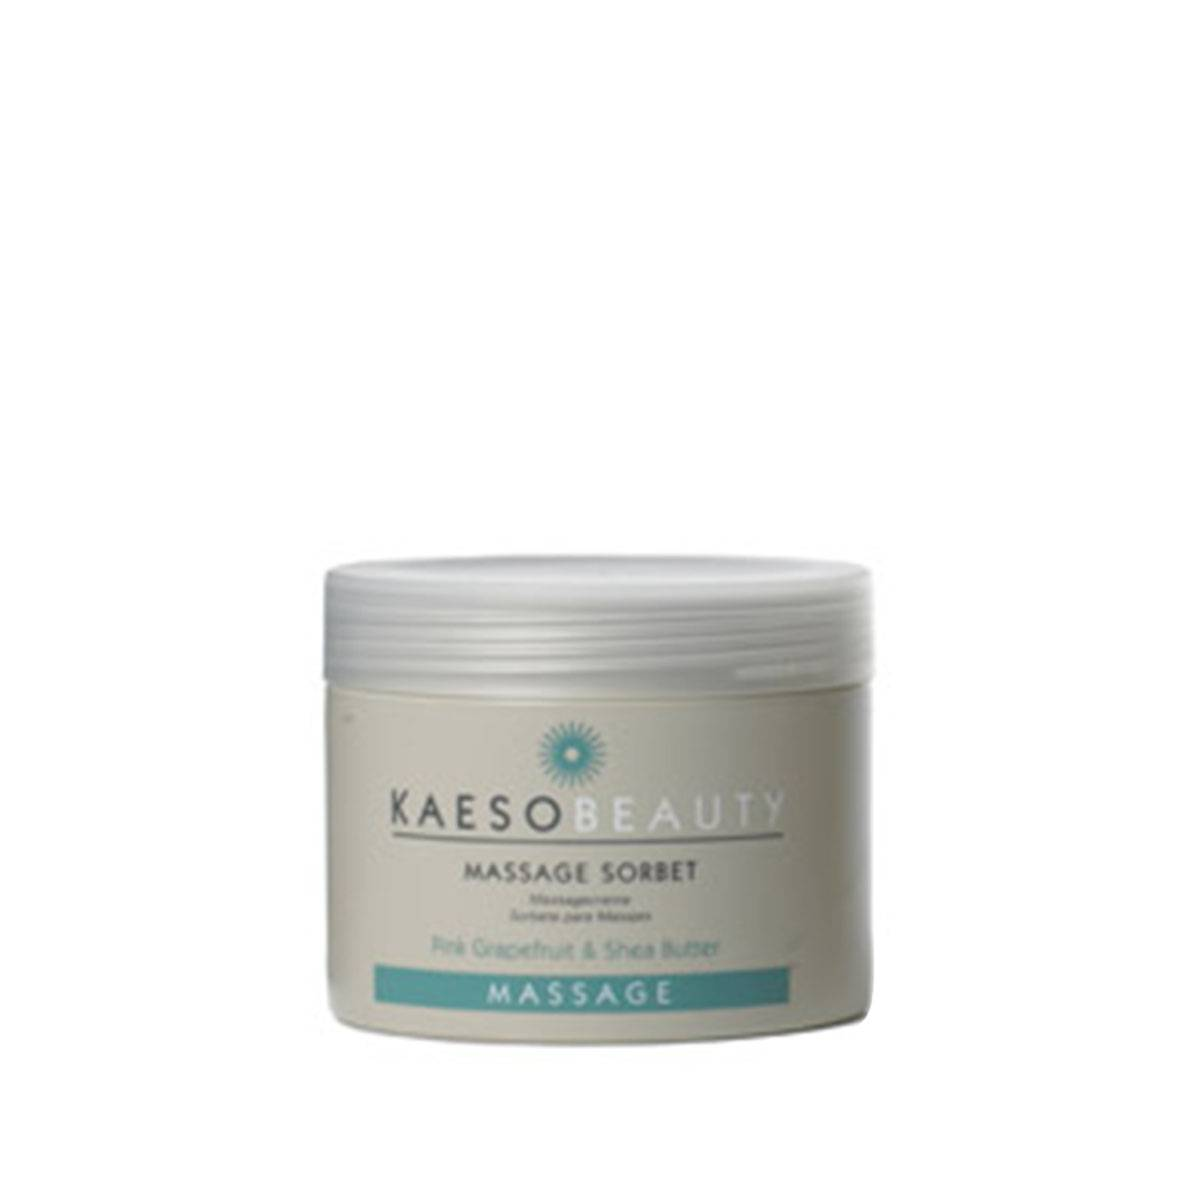 Kaeso Massage Sorbet Body Massage Cream